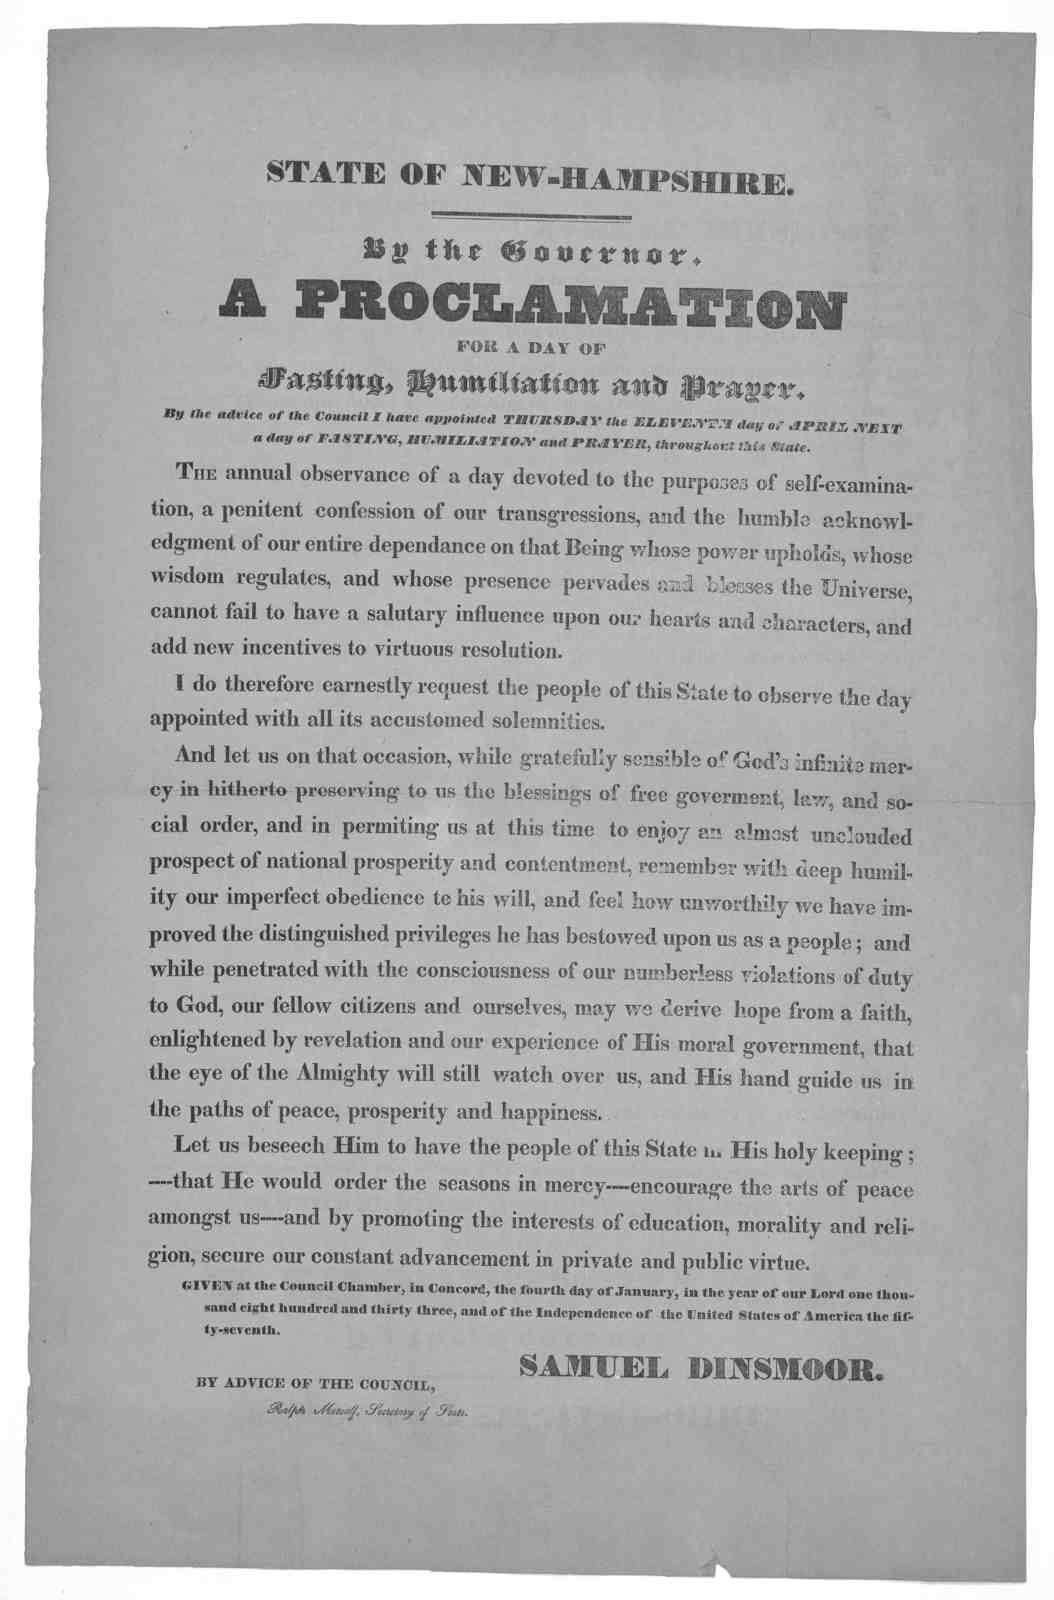 State of New-Hampshire. By the Governor. A proclamation for a day of fasting, humiliation and prayer. By the advice of the Council I have appointed Thursday the eleventh day of April next a day fasting, humiliation and prayer, throughout this St